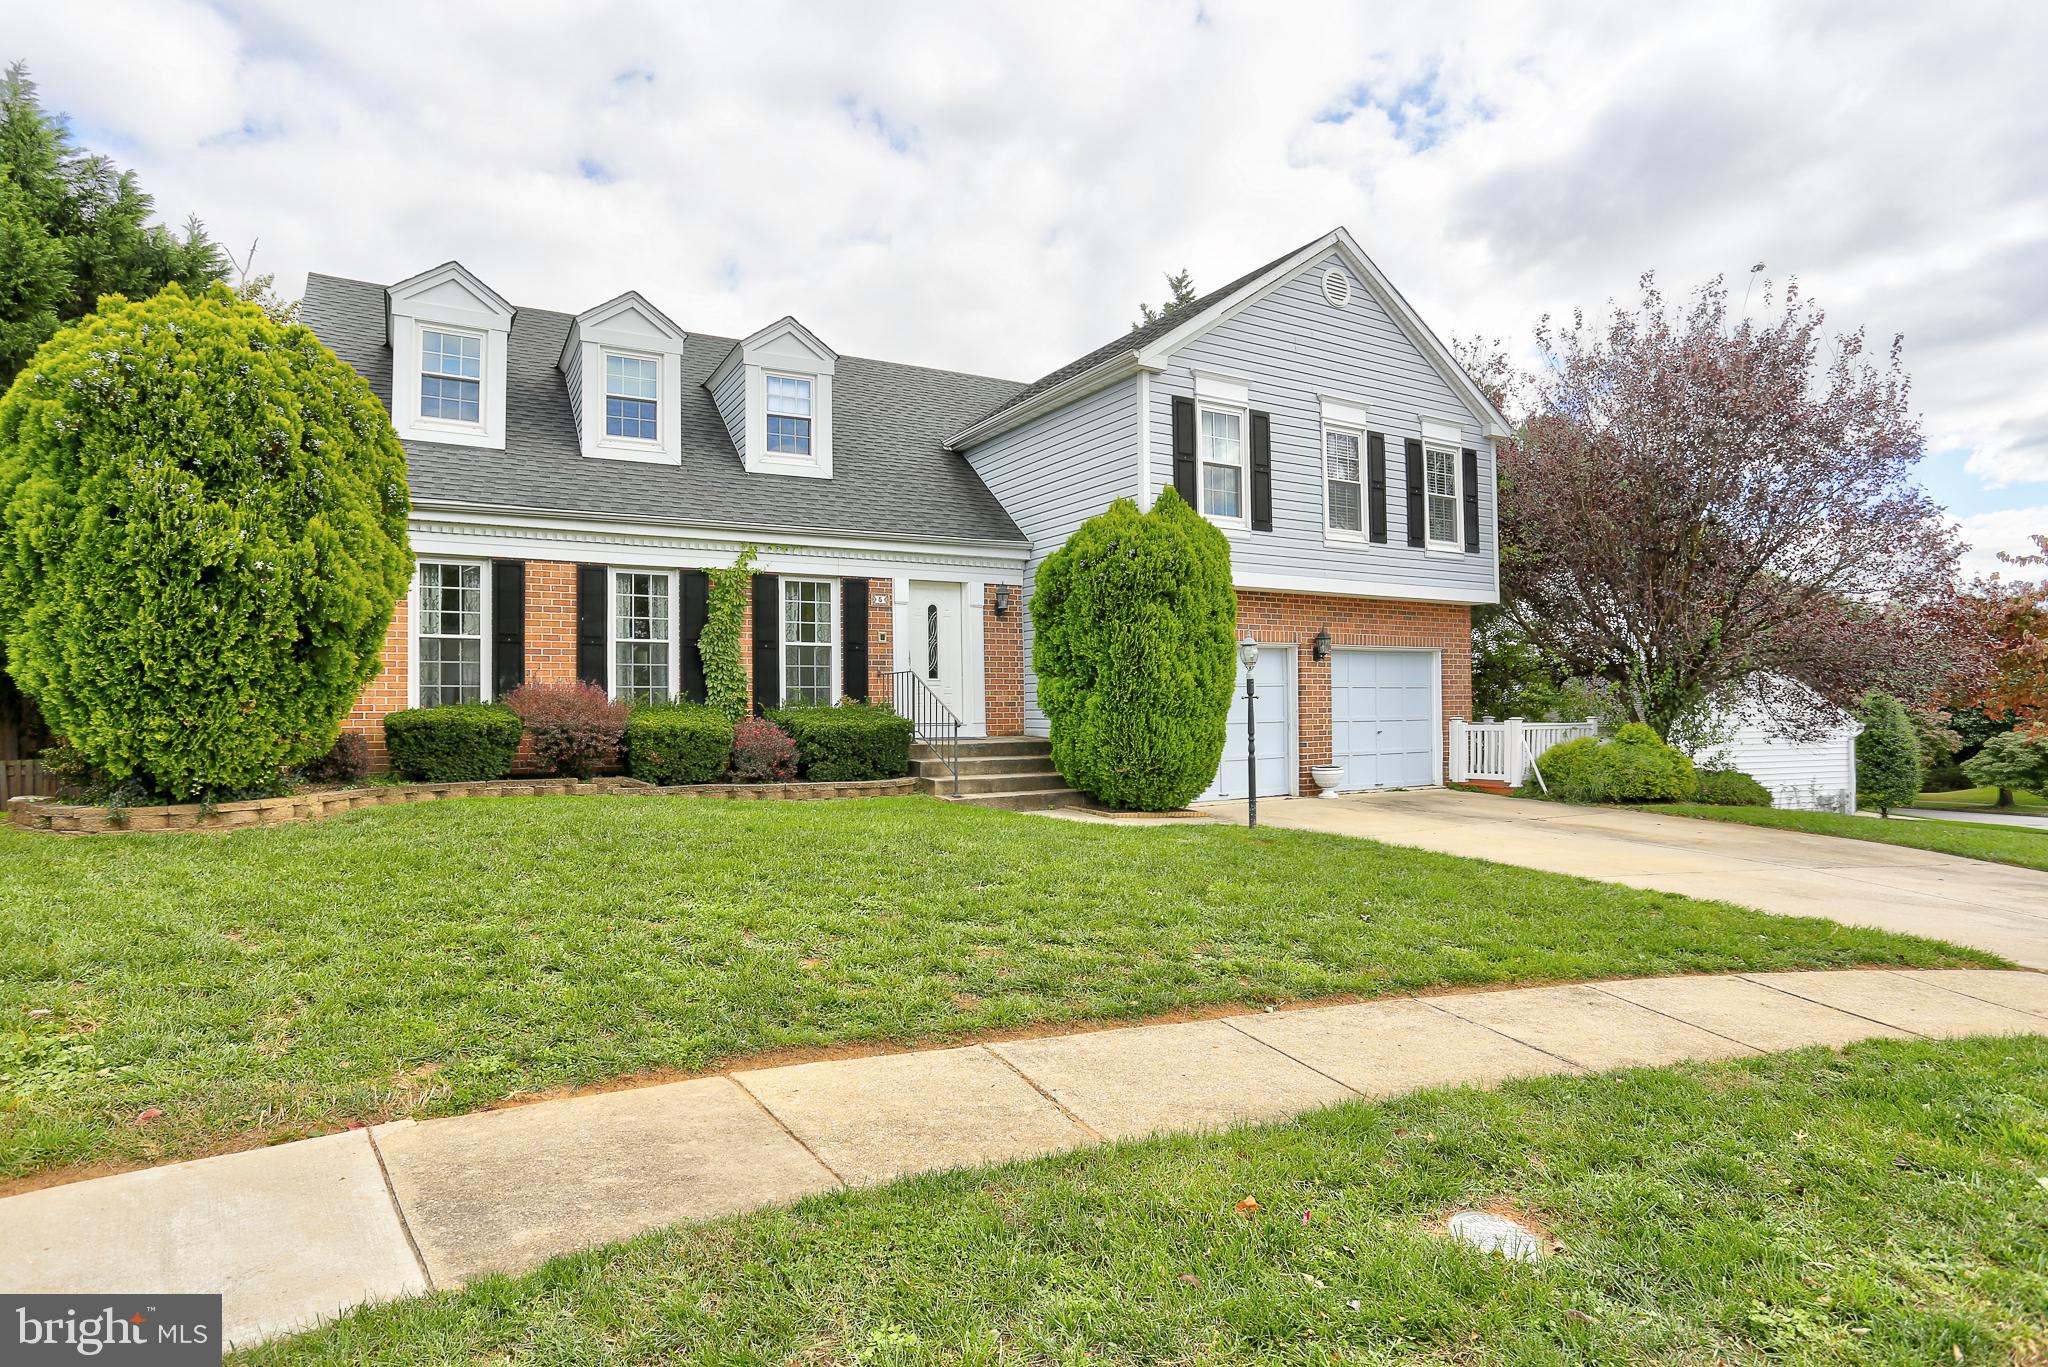 5 AMERICAN COURT, CATONSVILLE, MD 21228